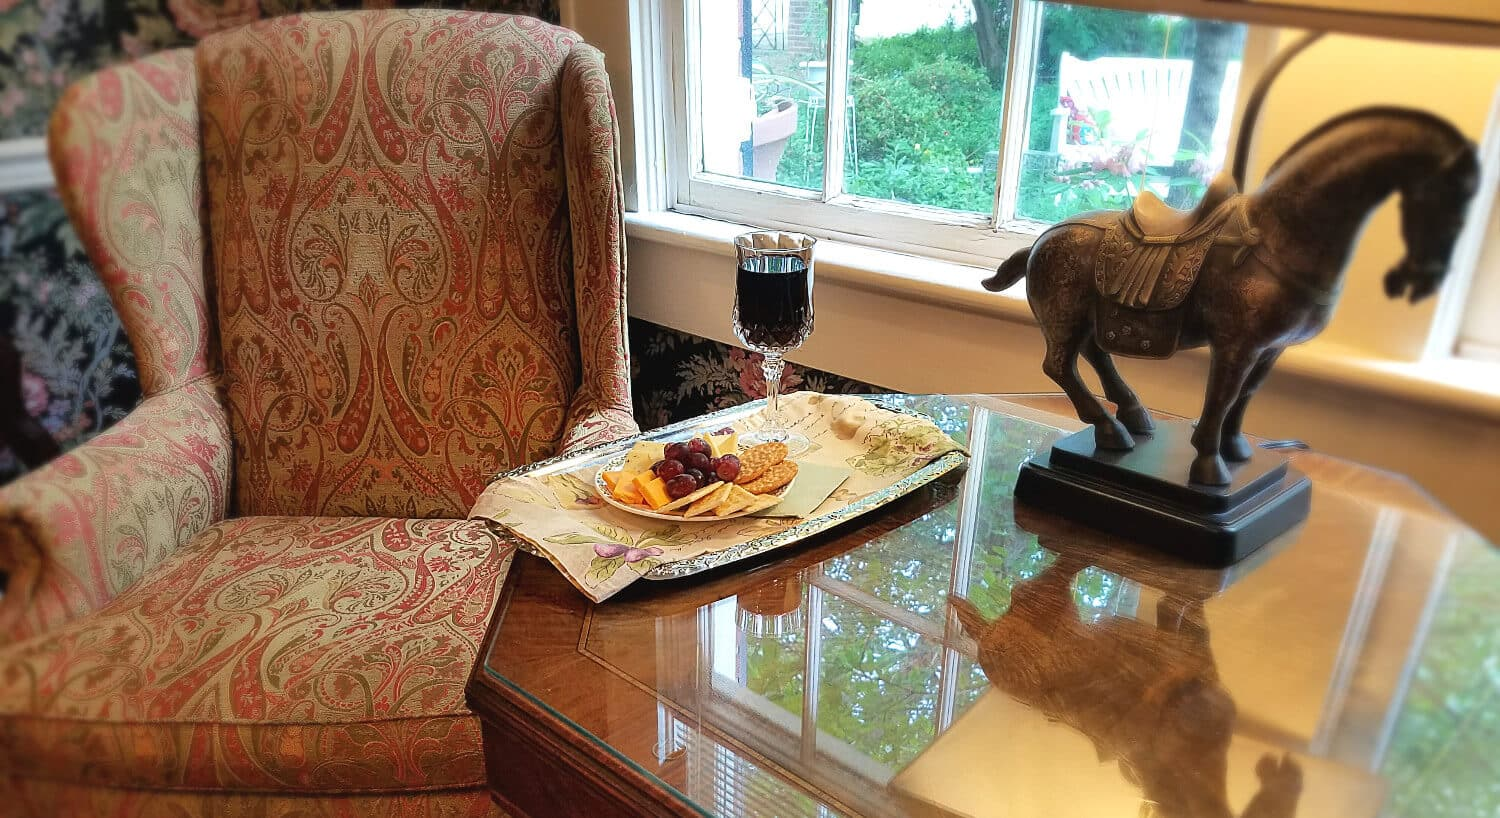 Wine, cheese and crackers on a tray next to an unhostered chair by a window.